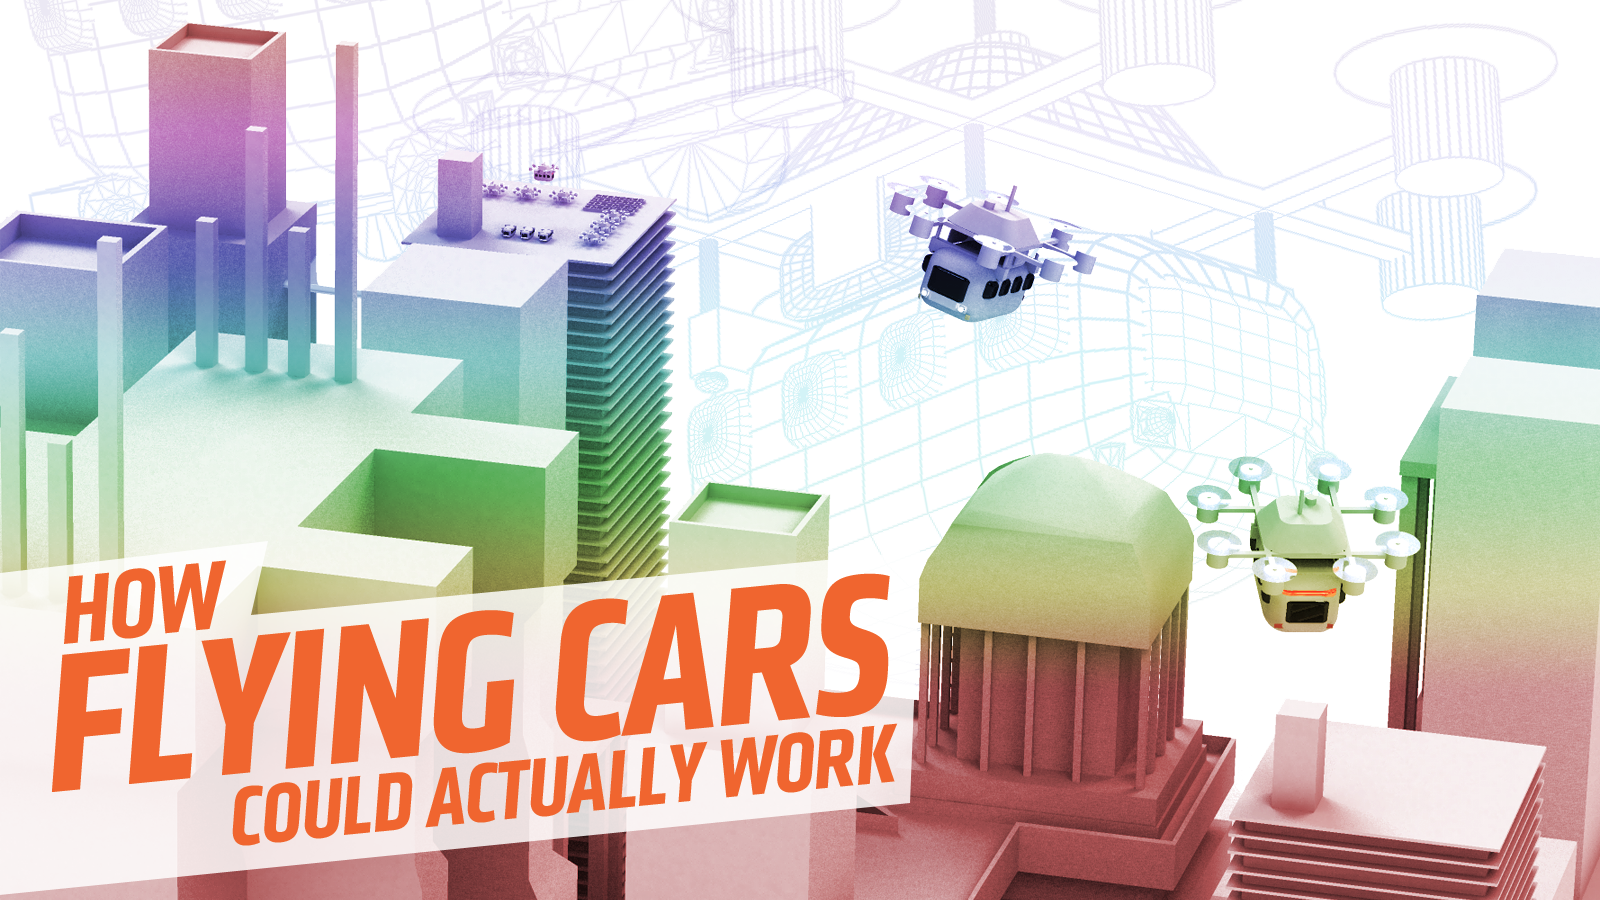 There's A Way To Make Flying Cars Actually Work